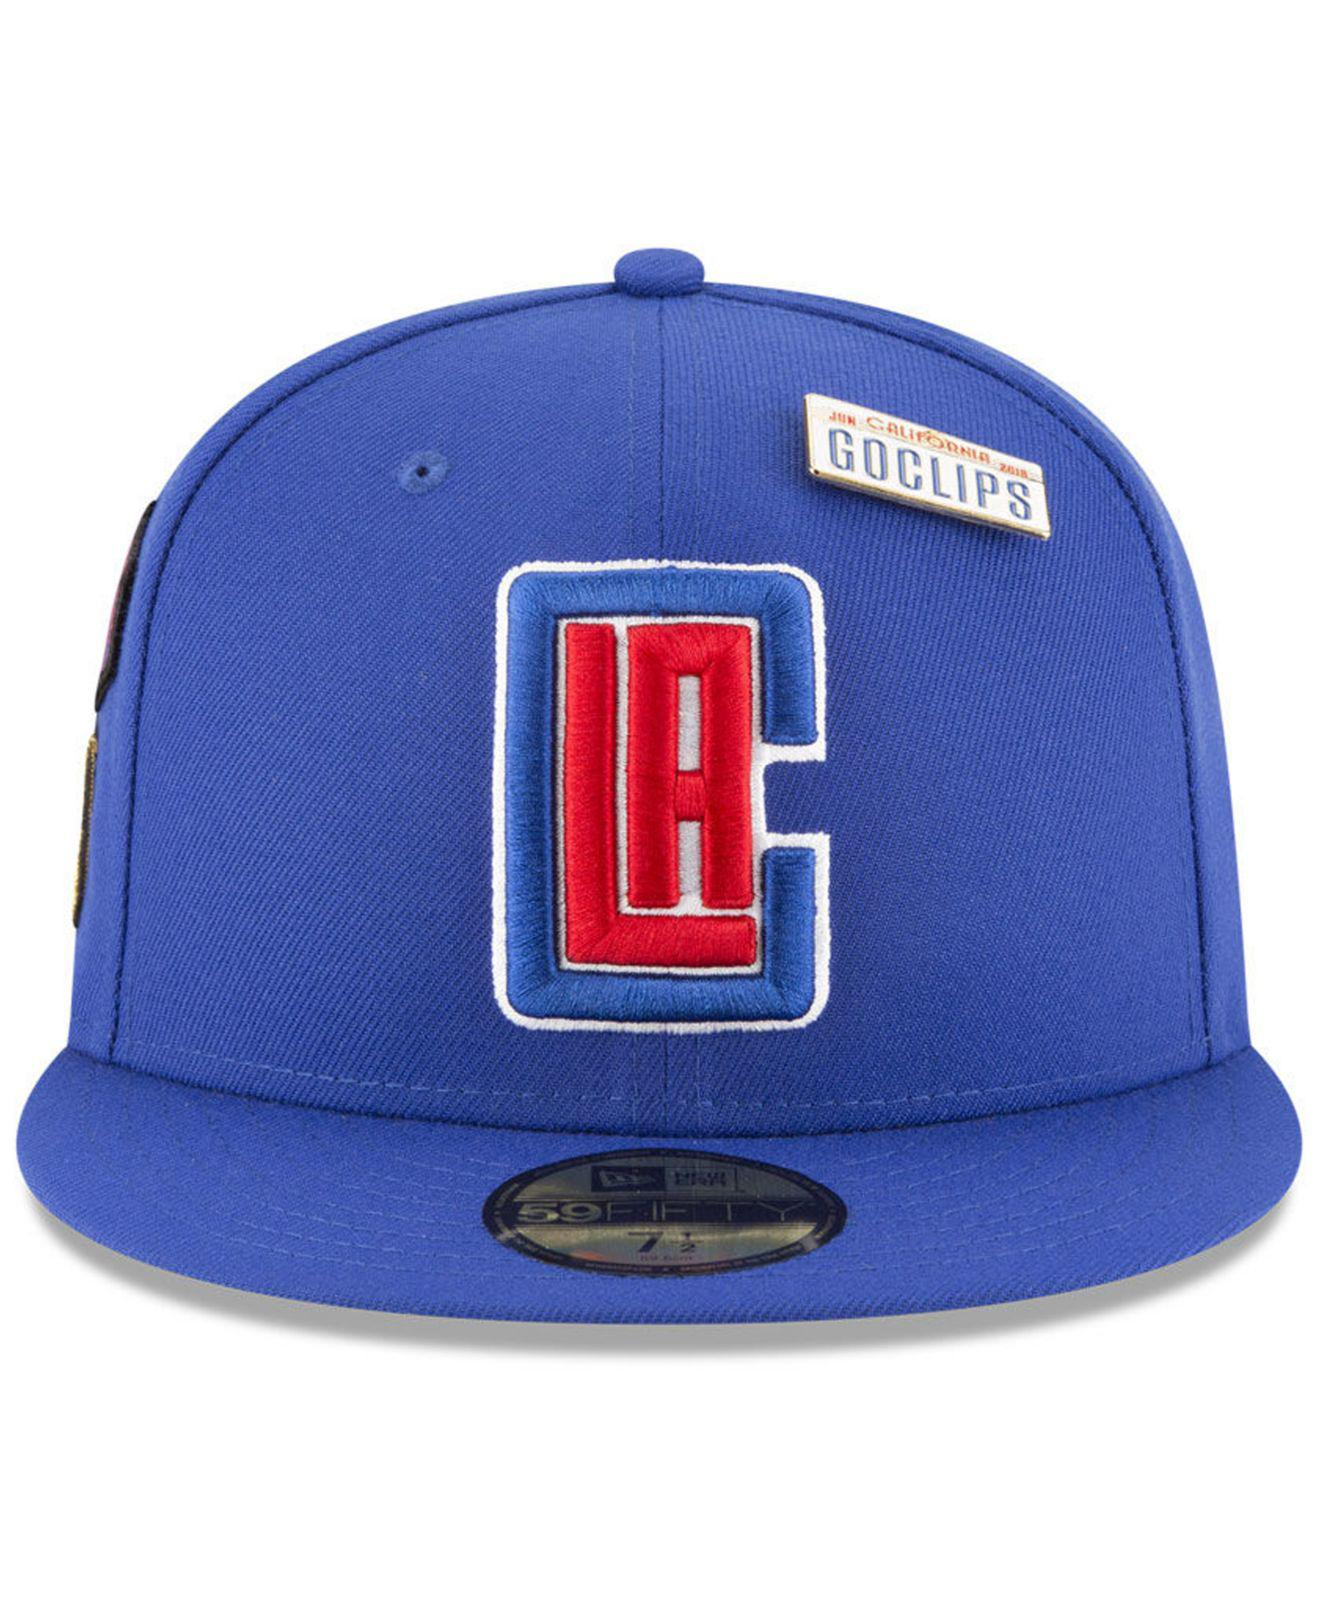 646bb35a8fe Lyst - Ktz Los Angeles Clippers On-court Collection 59fifty Fitted Cap in  Blue for Men